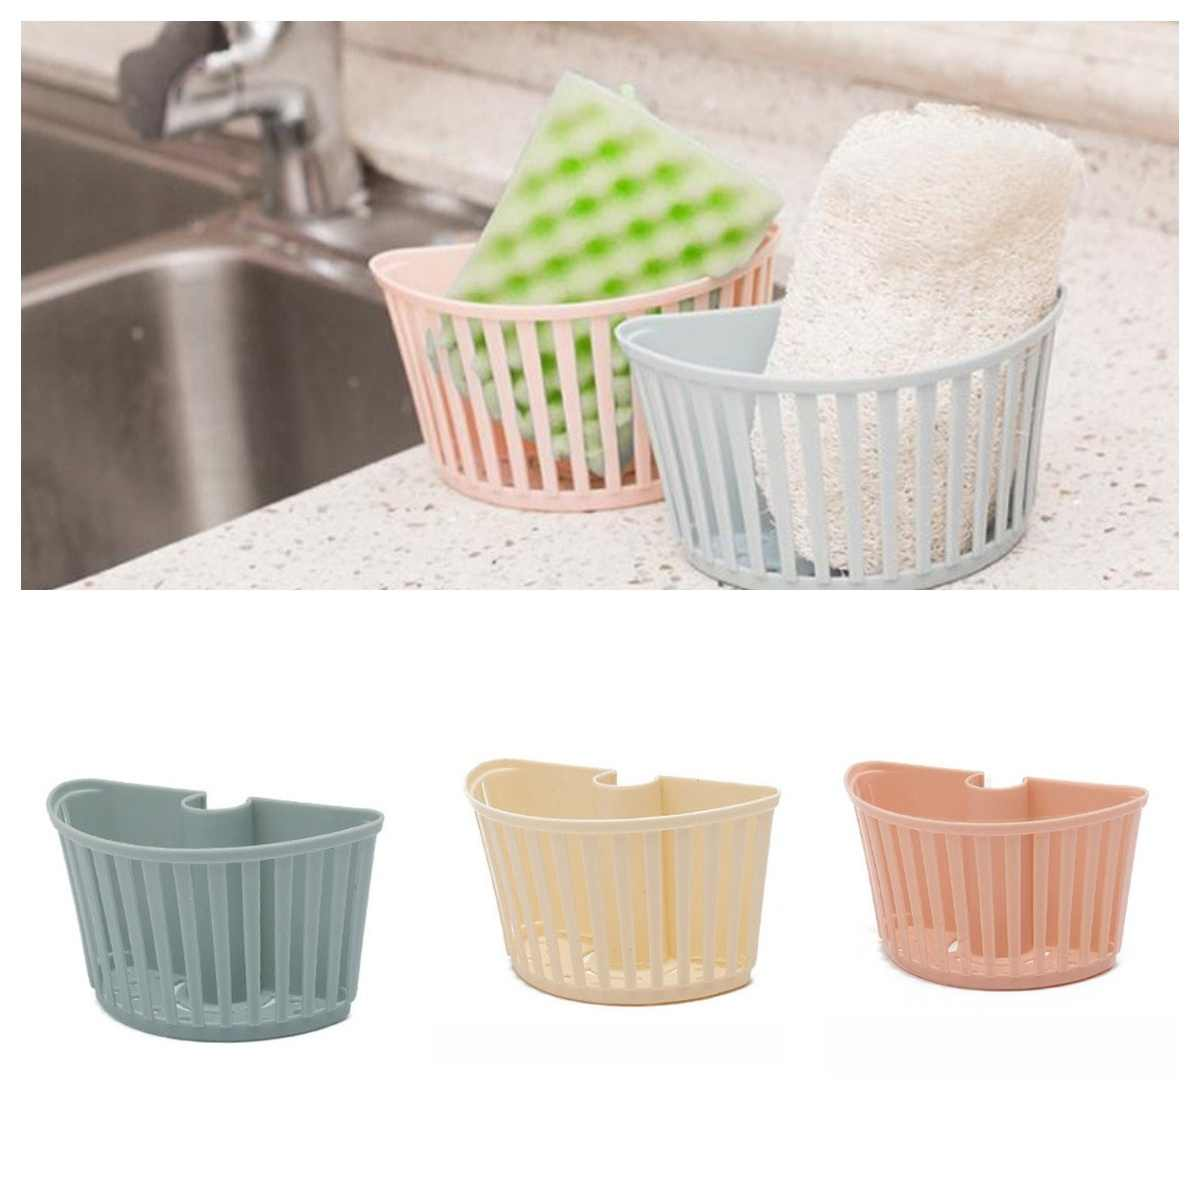 Debris Rack Drain Rack Sink Plastic Hanging Basket Racks Shelf Basket Spout Holder Sponge Storage Kitchen Supplies Faucet Rack